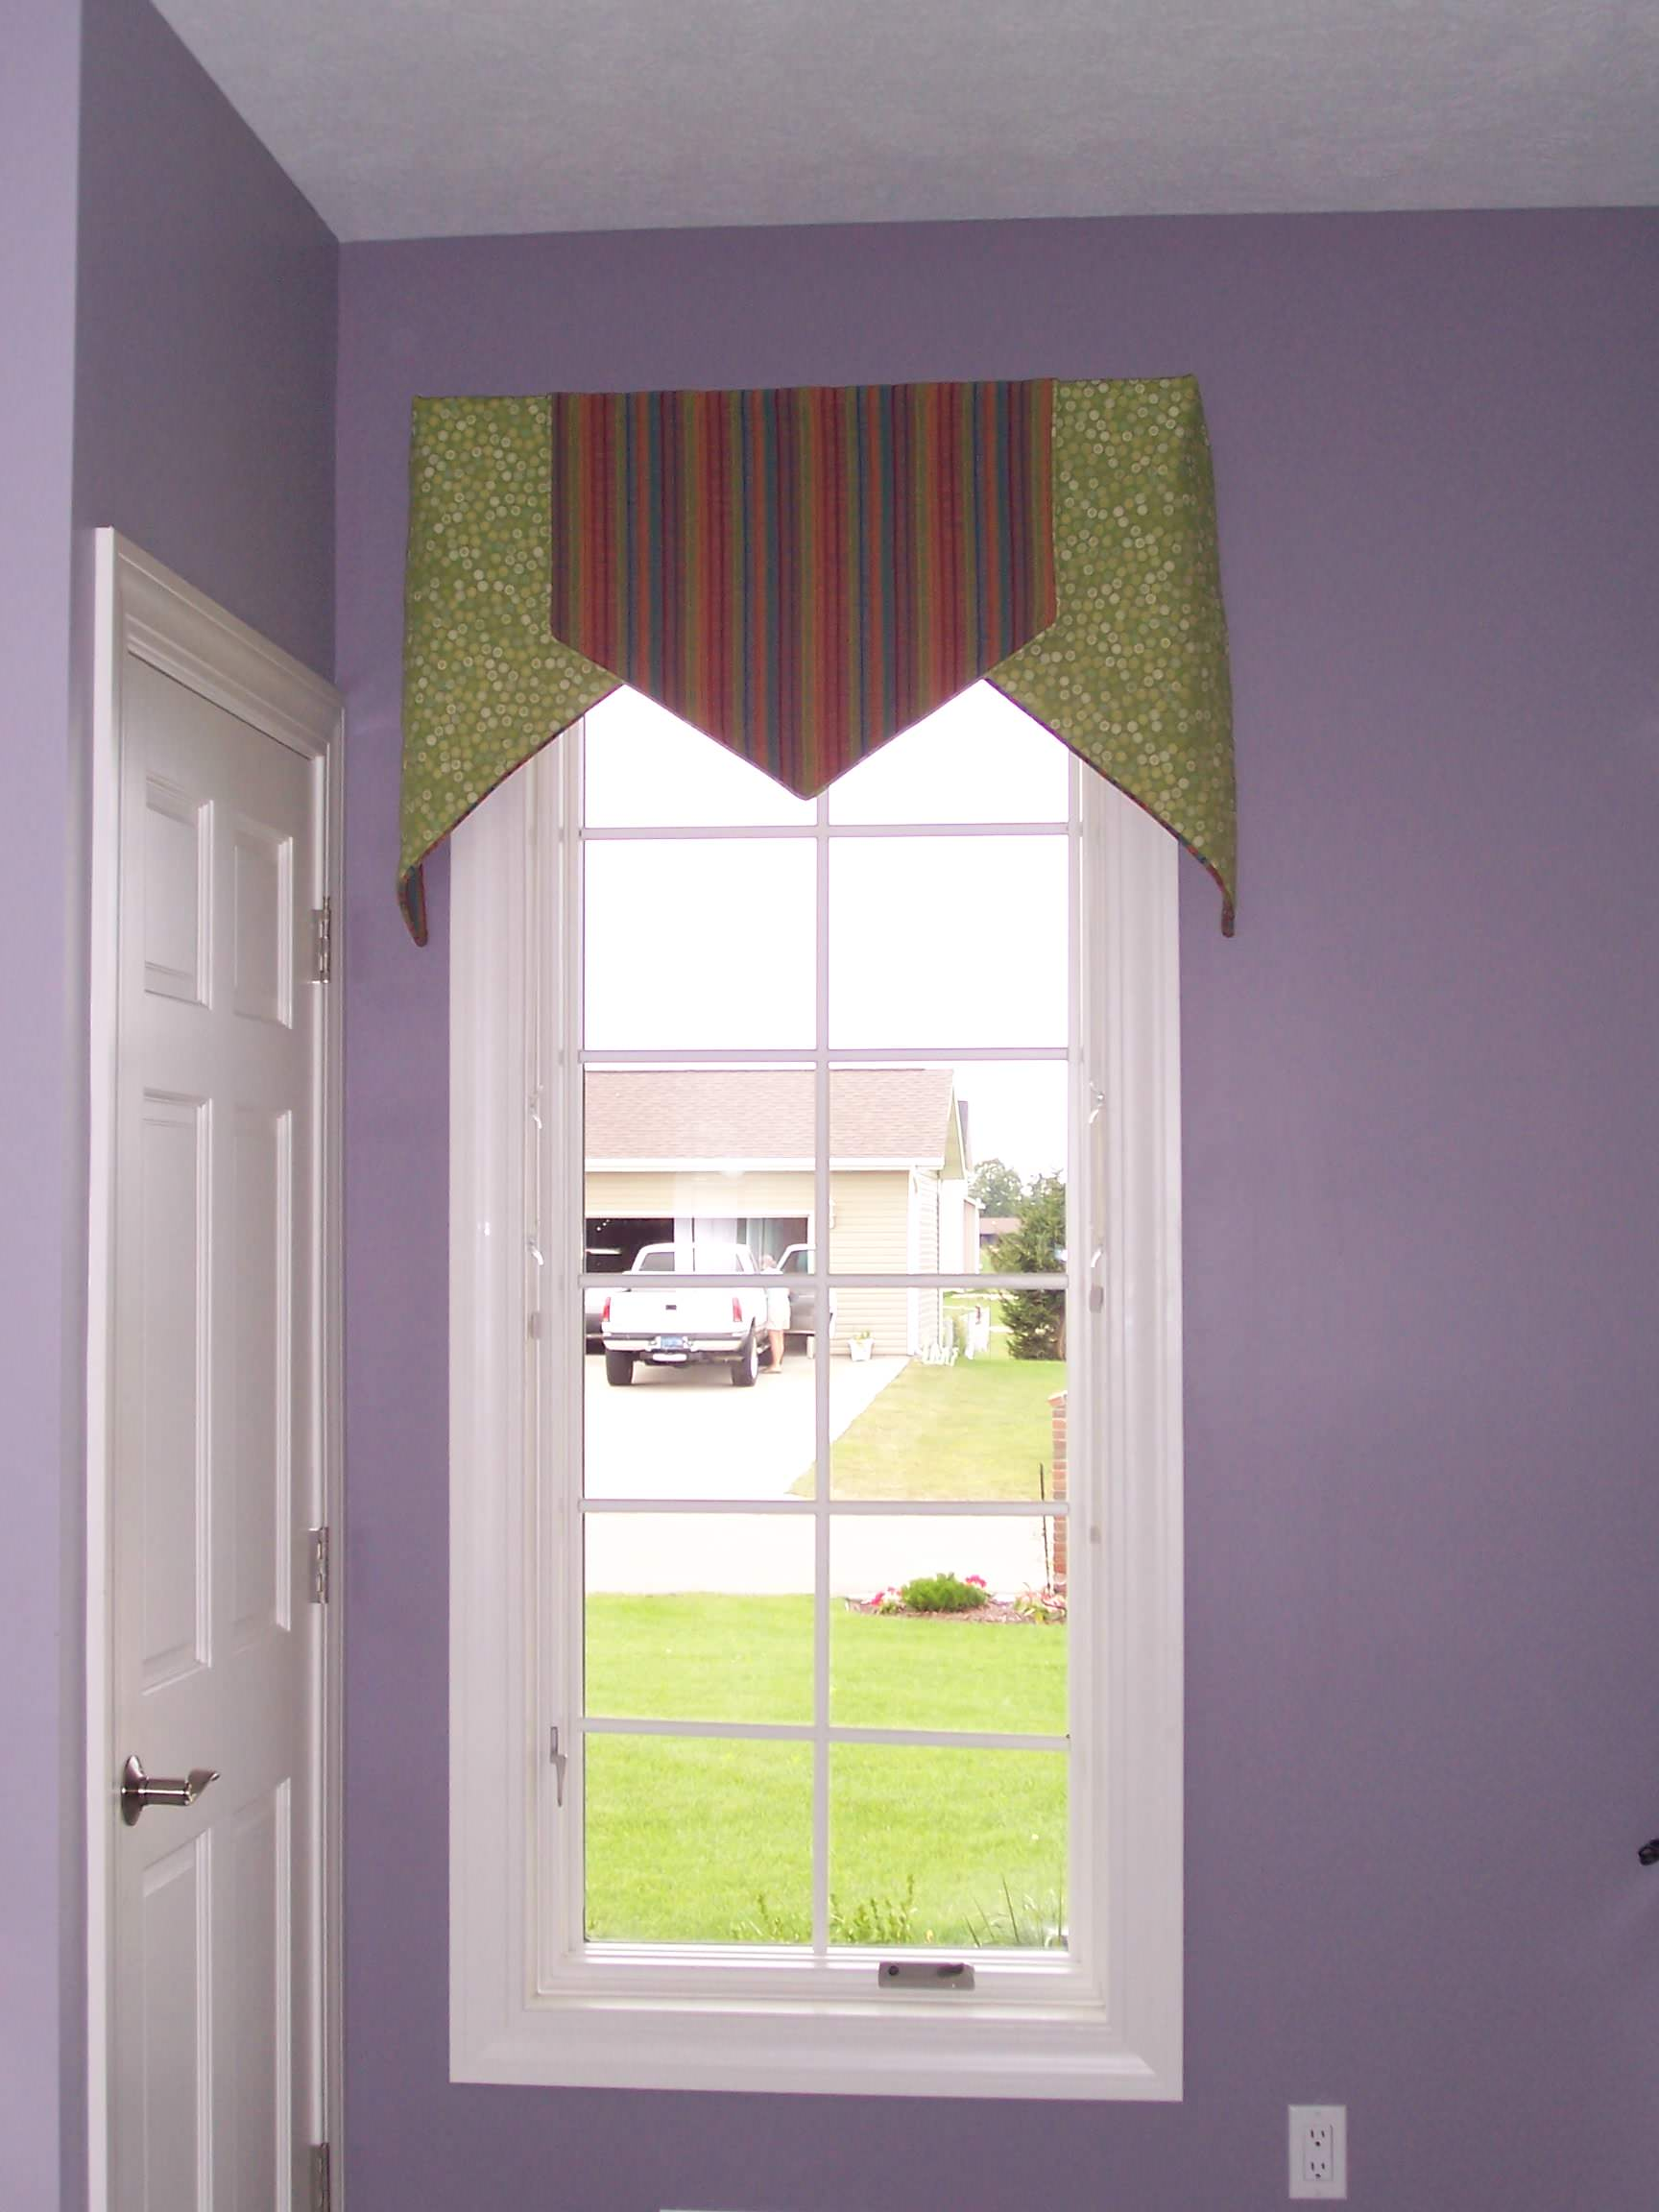 Picture of: Contemporary Window Valances Houzz